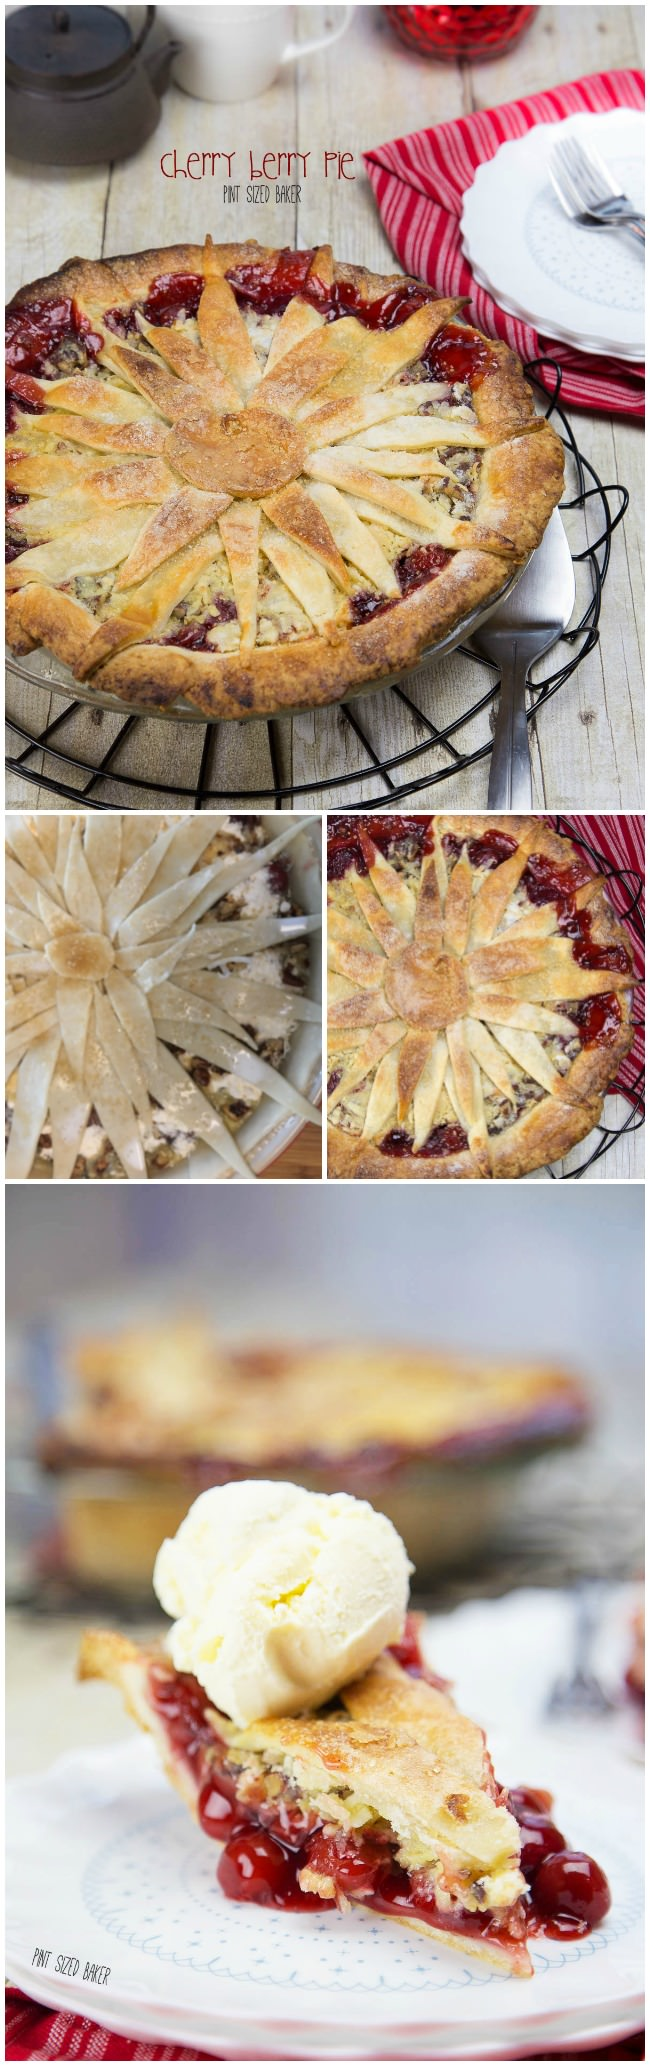 This Cherry Berry Pie is great any time of year! Make a fun flower topping to give your pie some extra fun design!